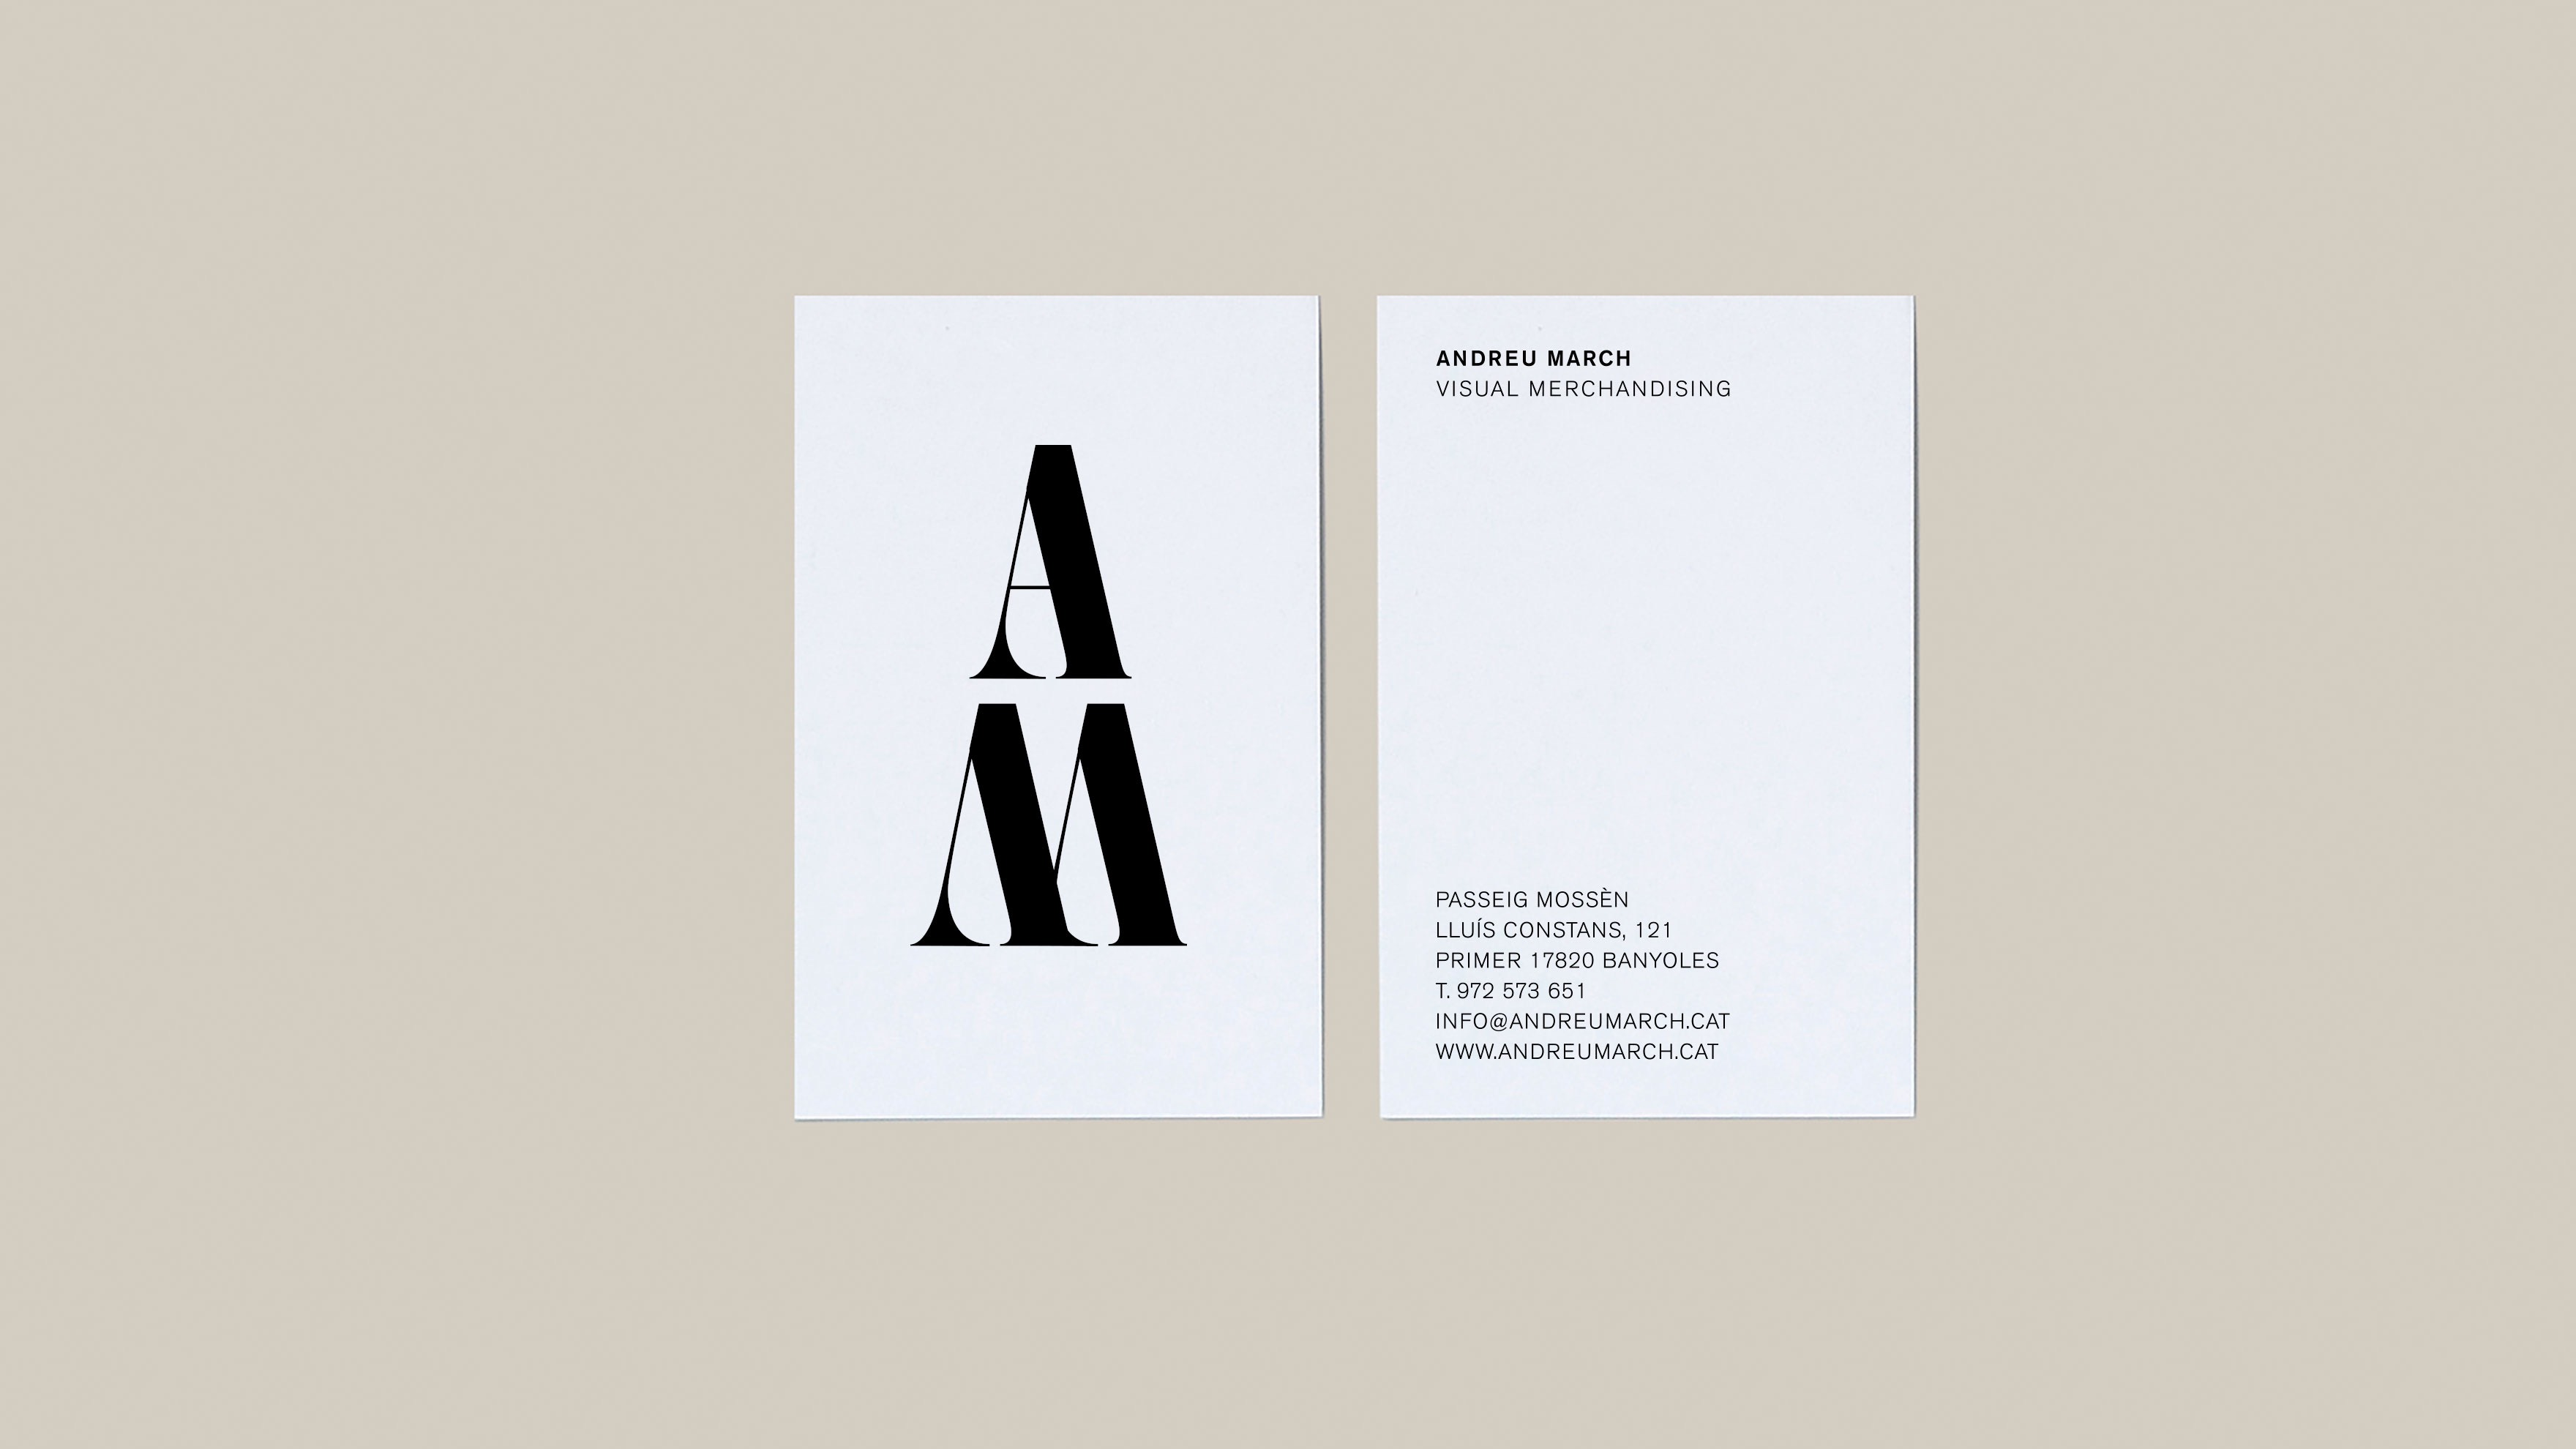 ANDREU MARCH / IDENTITAT CORPORATIVA / BRANDING